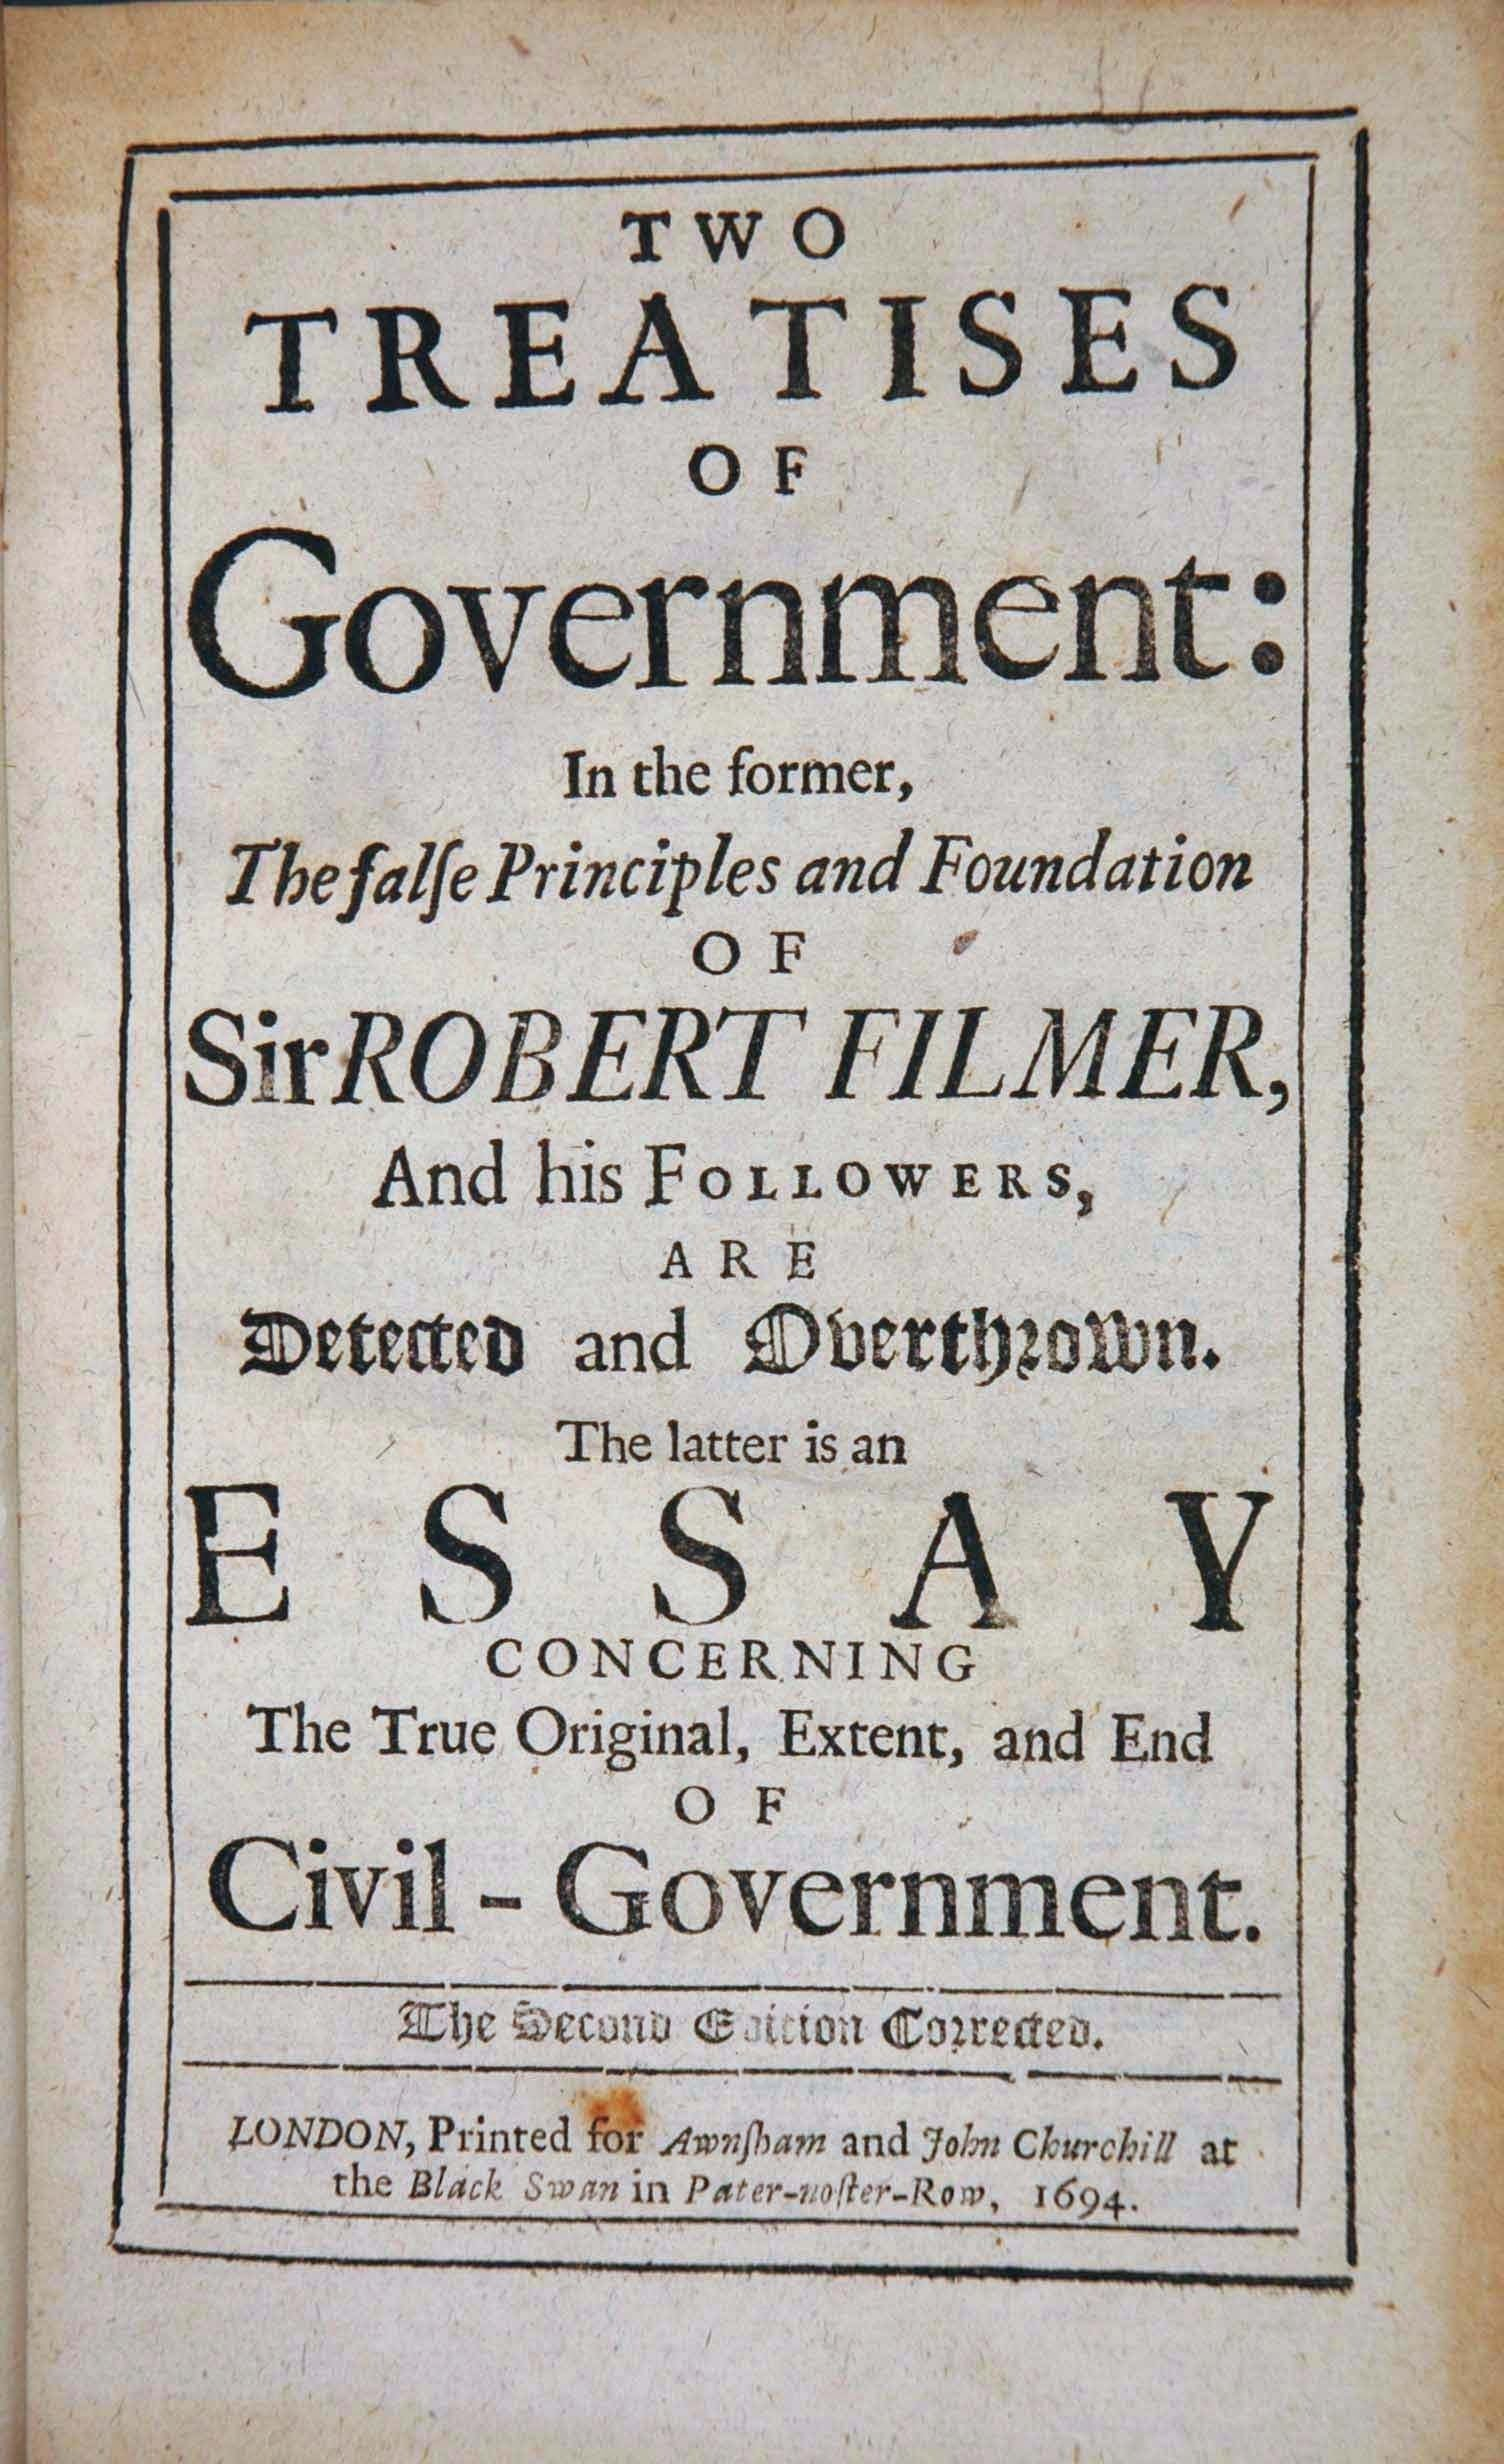 10 Cute John Locke Ideas On Government in defence of limited government the genealogy of consent 2020